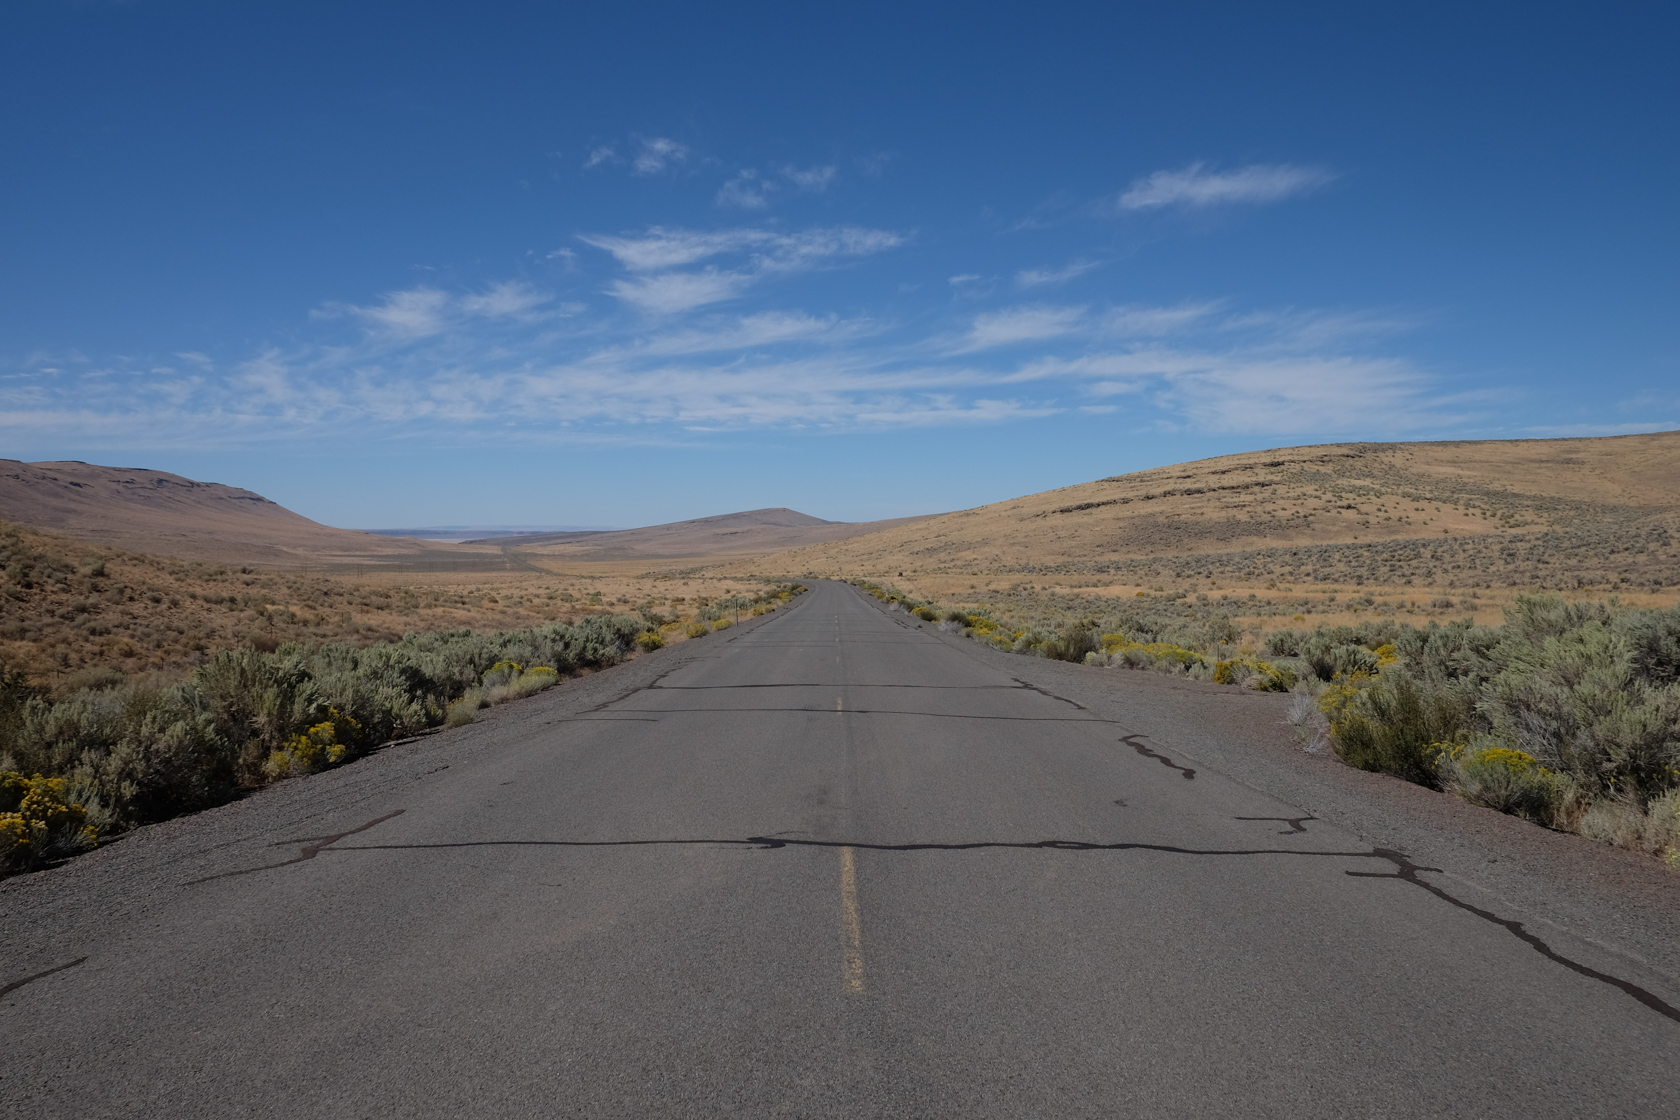 On the way from Frenchglen to Fields, I had to stop and take a picture of the long, empty highway. It was hard to imagine that we were still in Oregon.